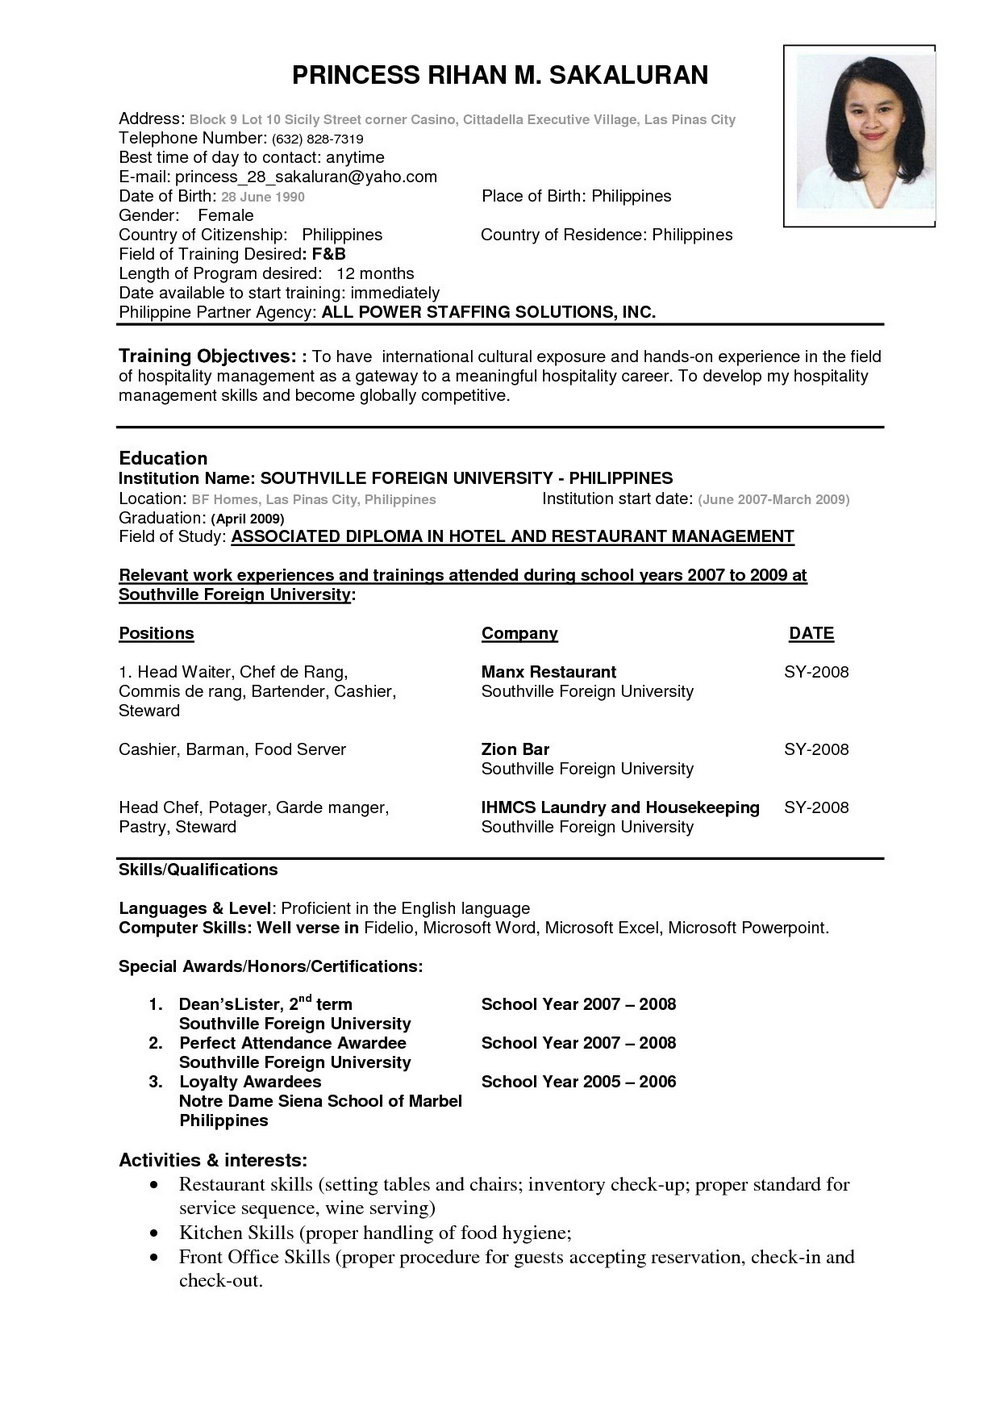 Resume Template 79 Enchanting Free Builder Templates Military